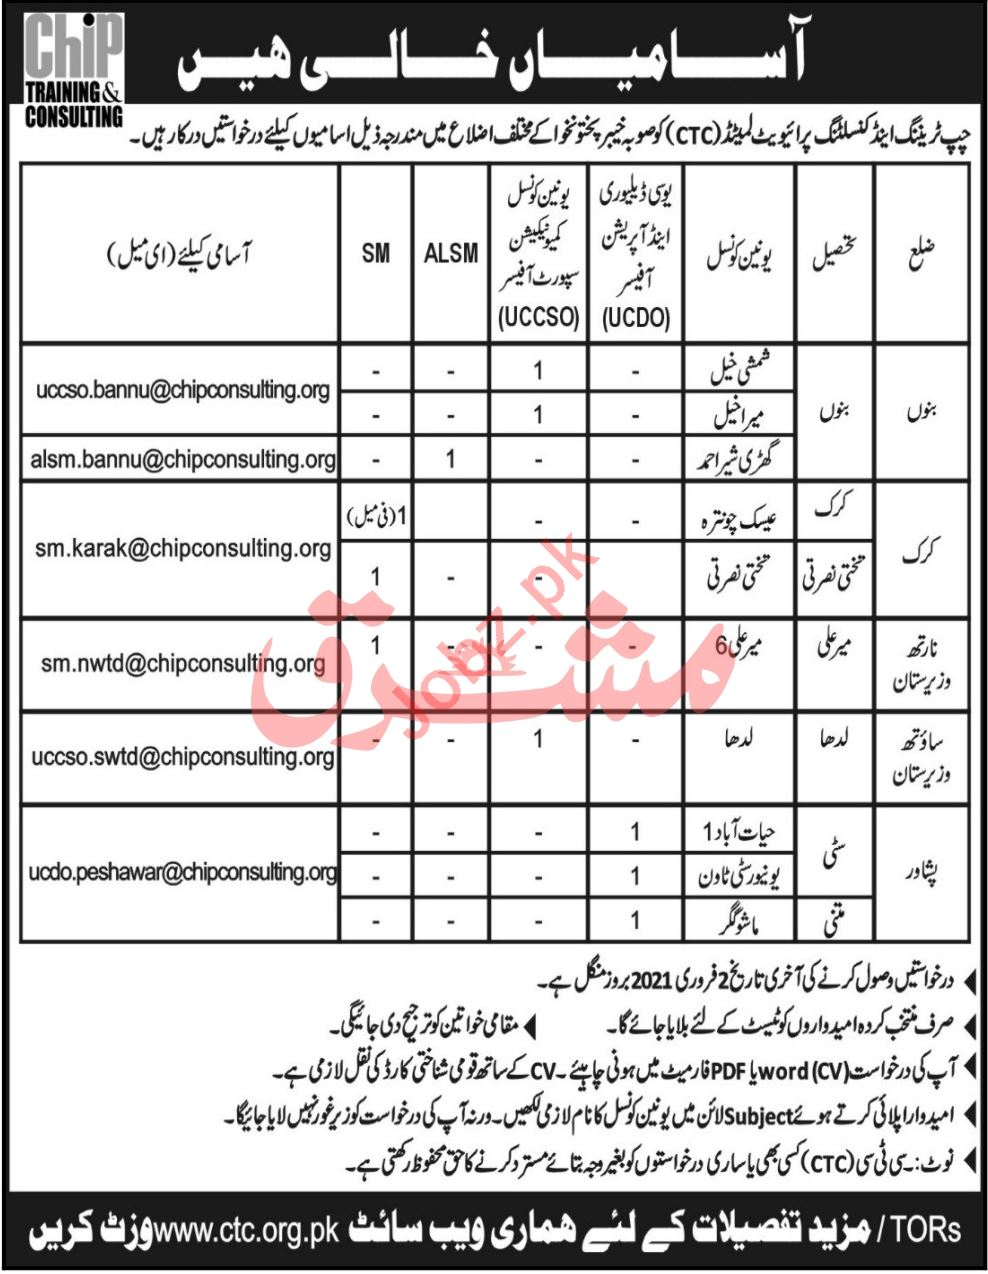 CHIP Training & Consulting CTC KPK Jobs 2021 UCDO Officer